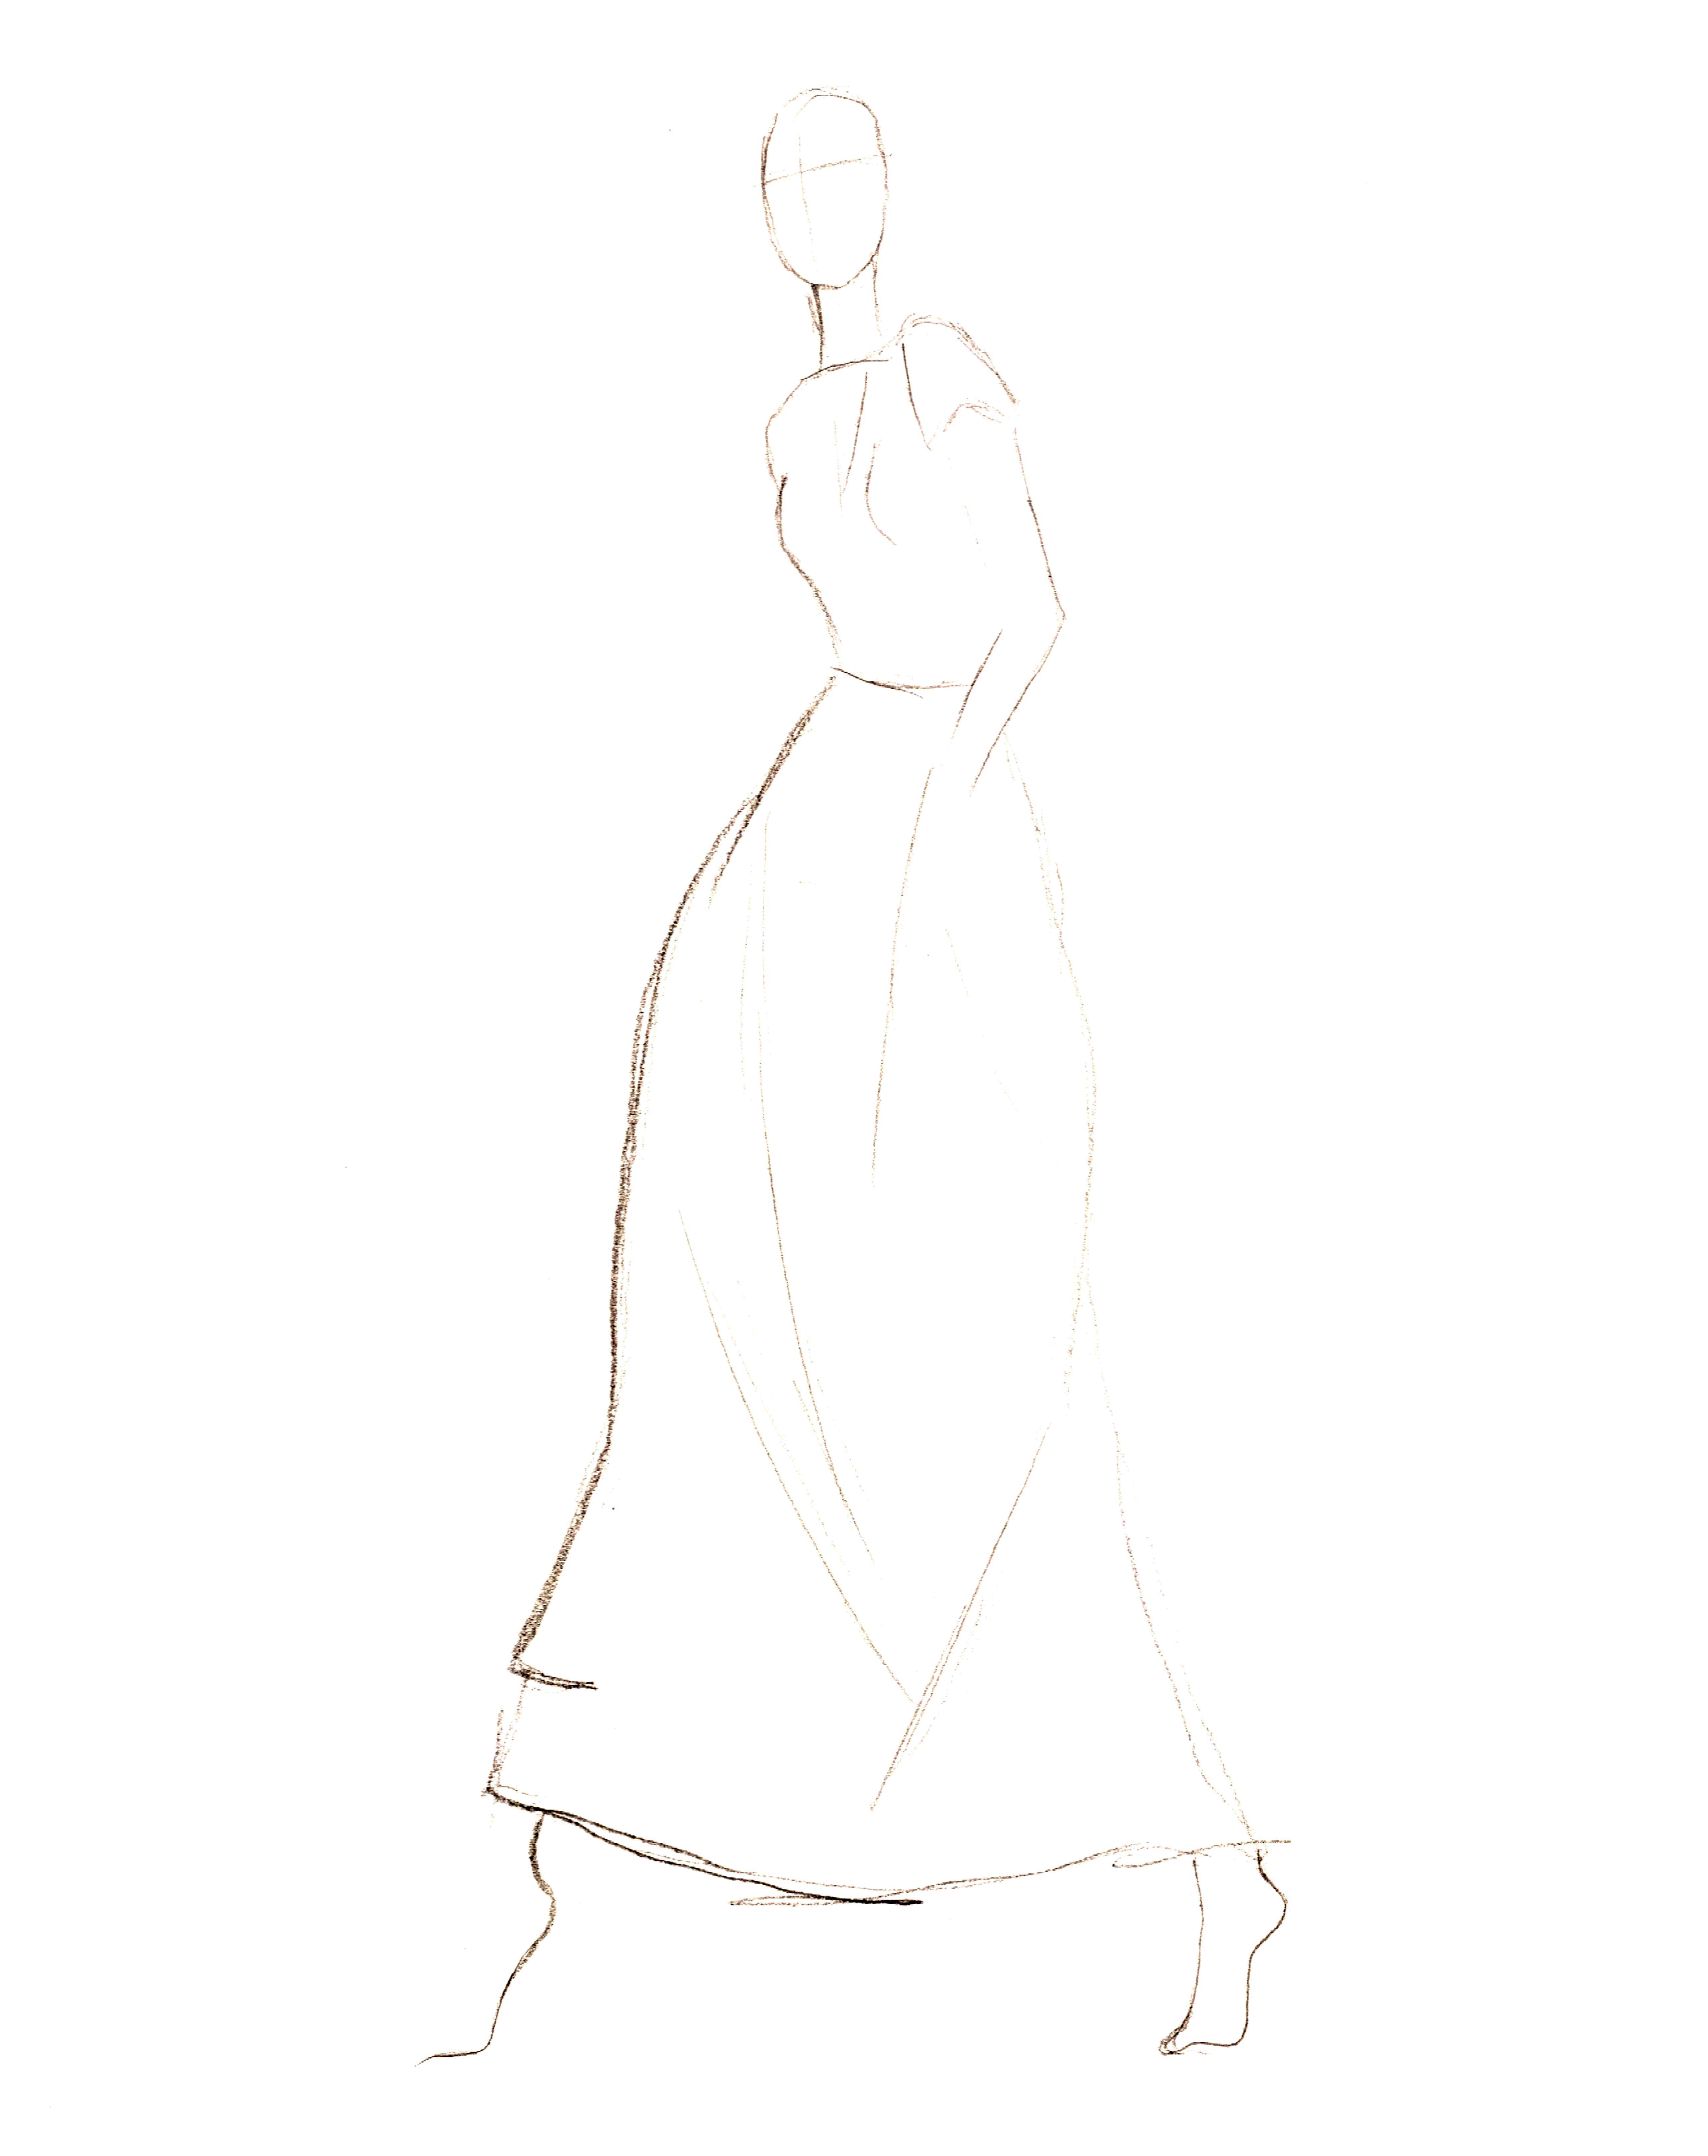 SKETCH / Dreamy, but strong - image 2 - student project